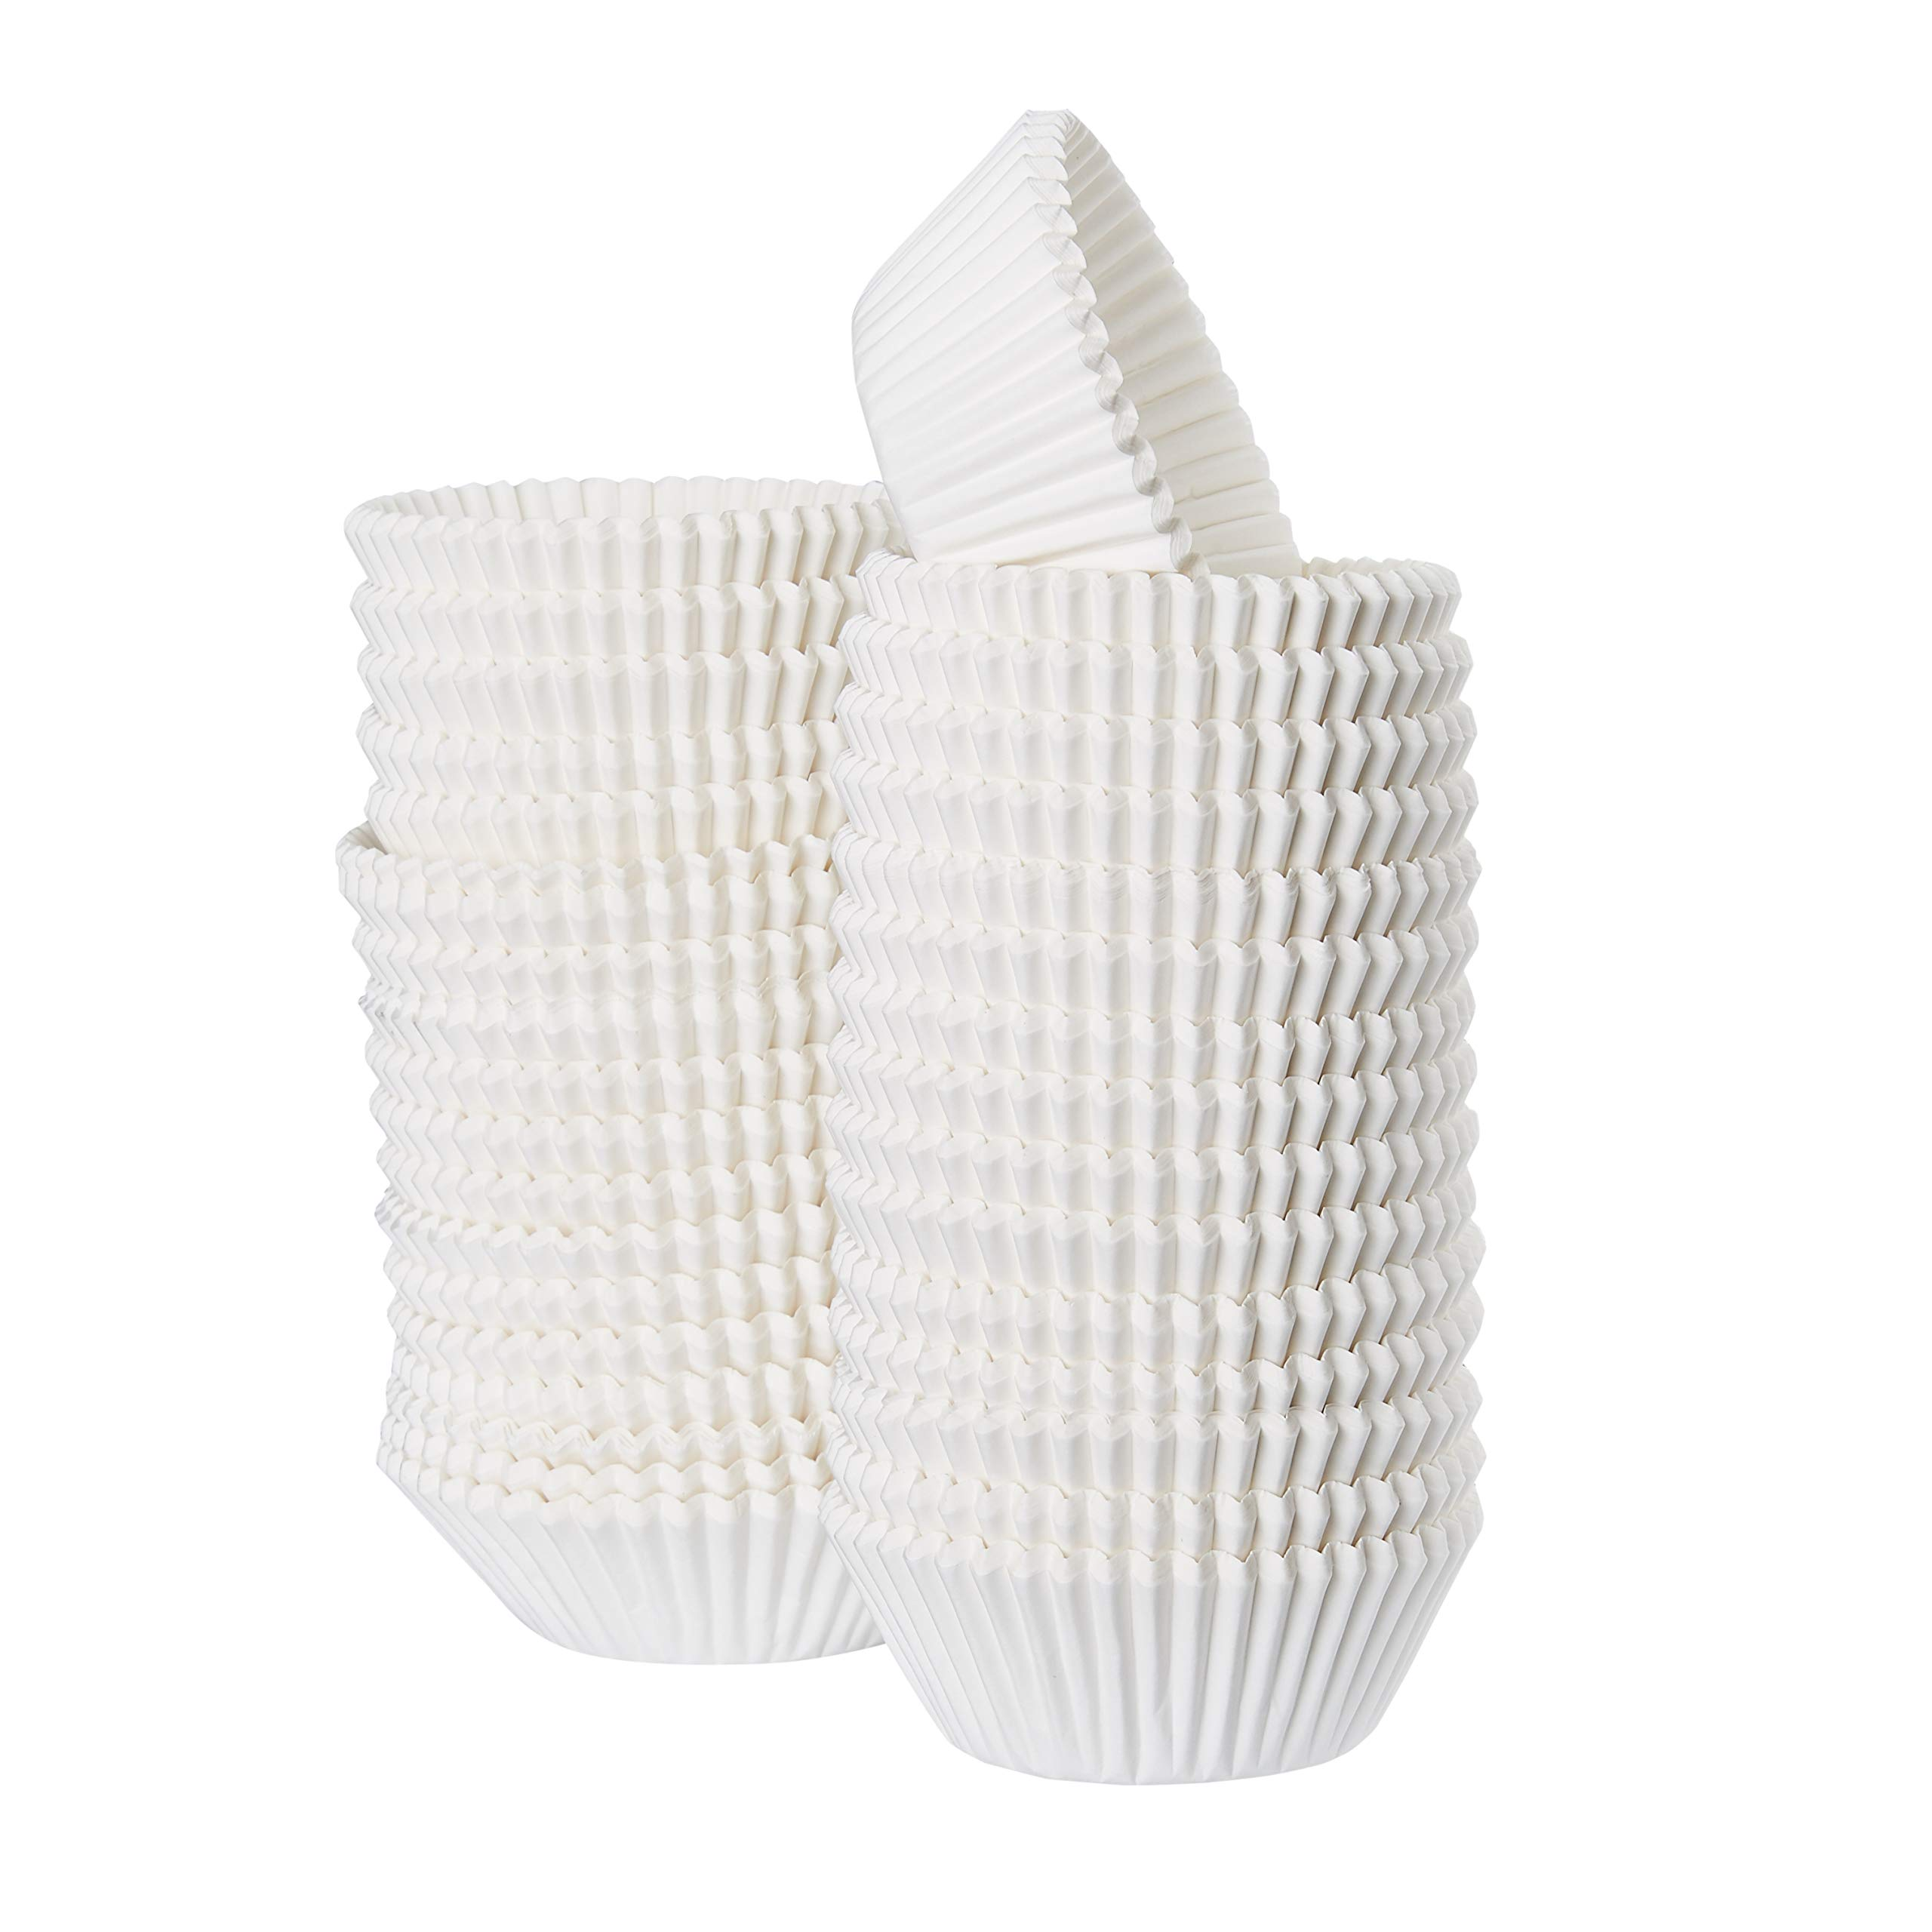 White Cupcake Liners - 1000-Pack Bulk Cupcake and Muffin Paper Baking Cups, Standard Sized Pastry Wrappers, Ideal for Professional Bakery Business Supplies, Birthday Parties, Weddings, 2 x 1 Inches by Juvale